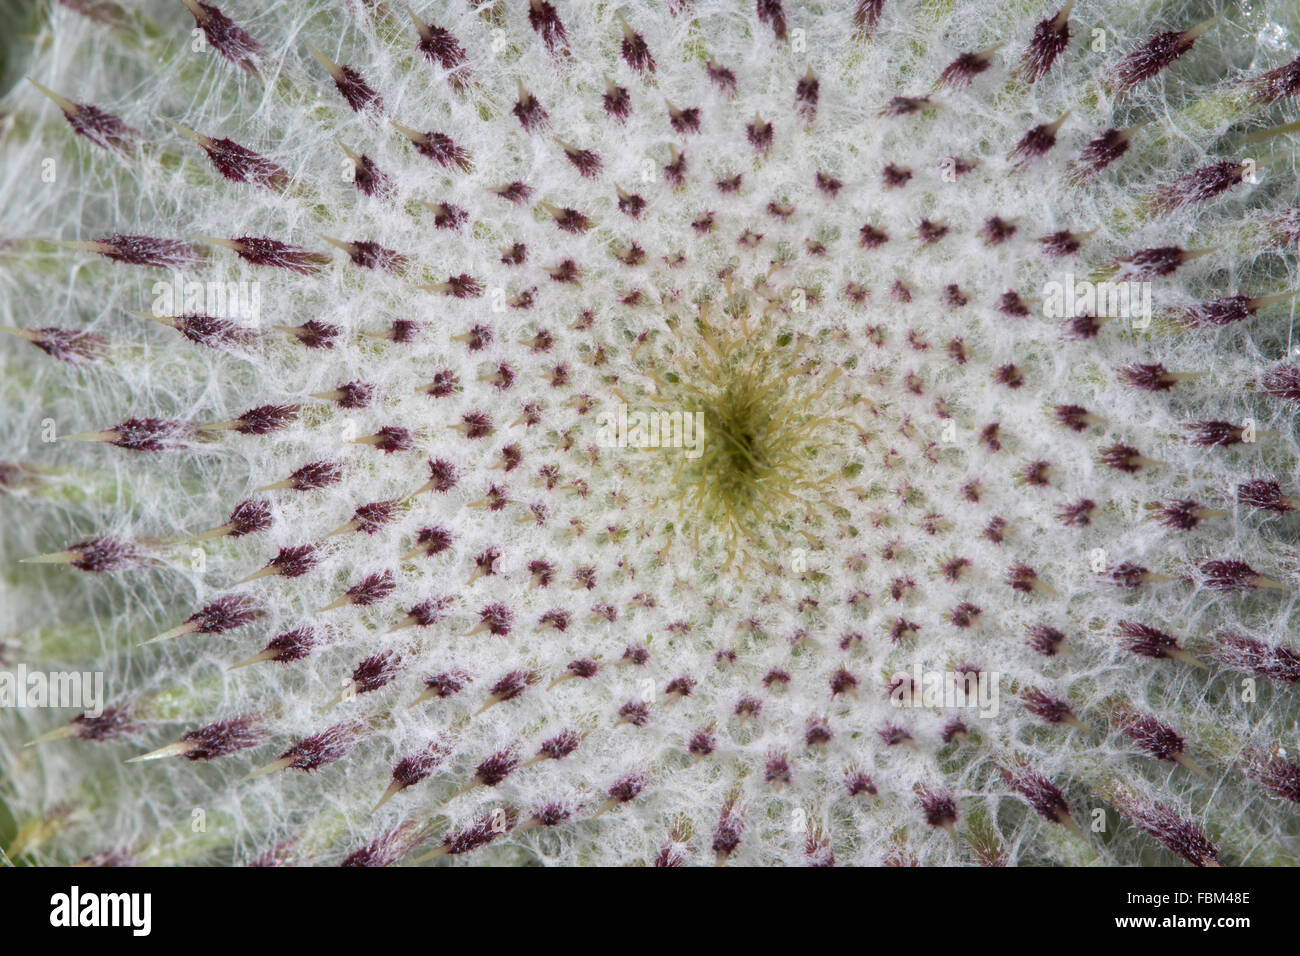 Close-up of a Woolly Thistle (Cirsium eriophorum) flower head - Stock Image